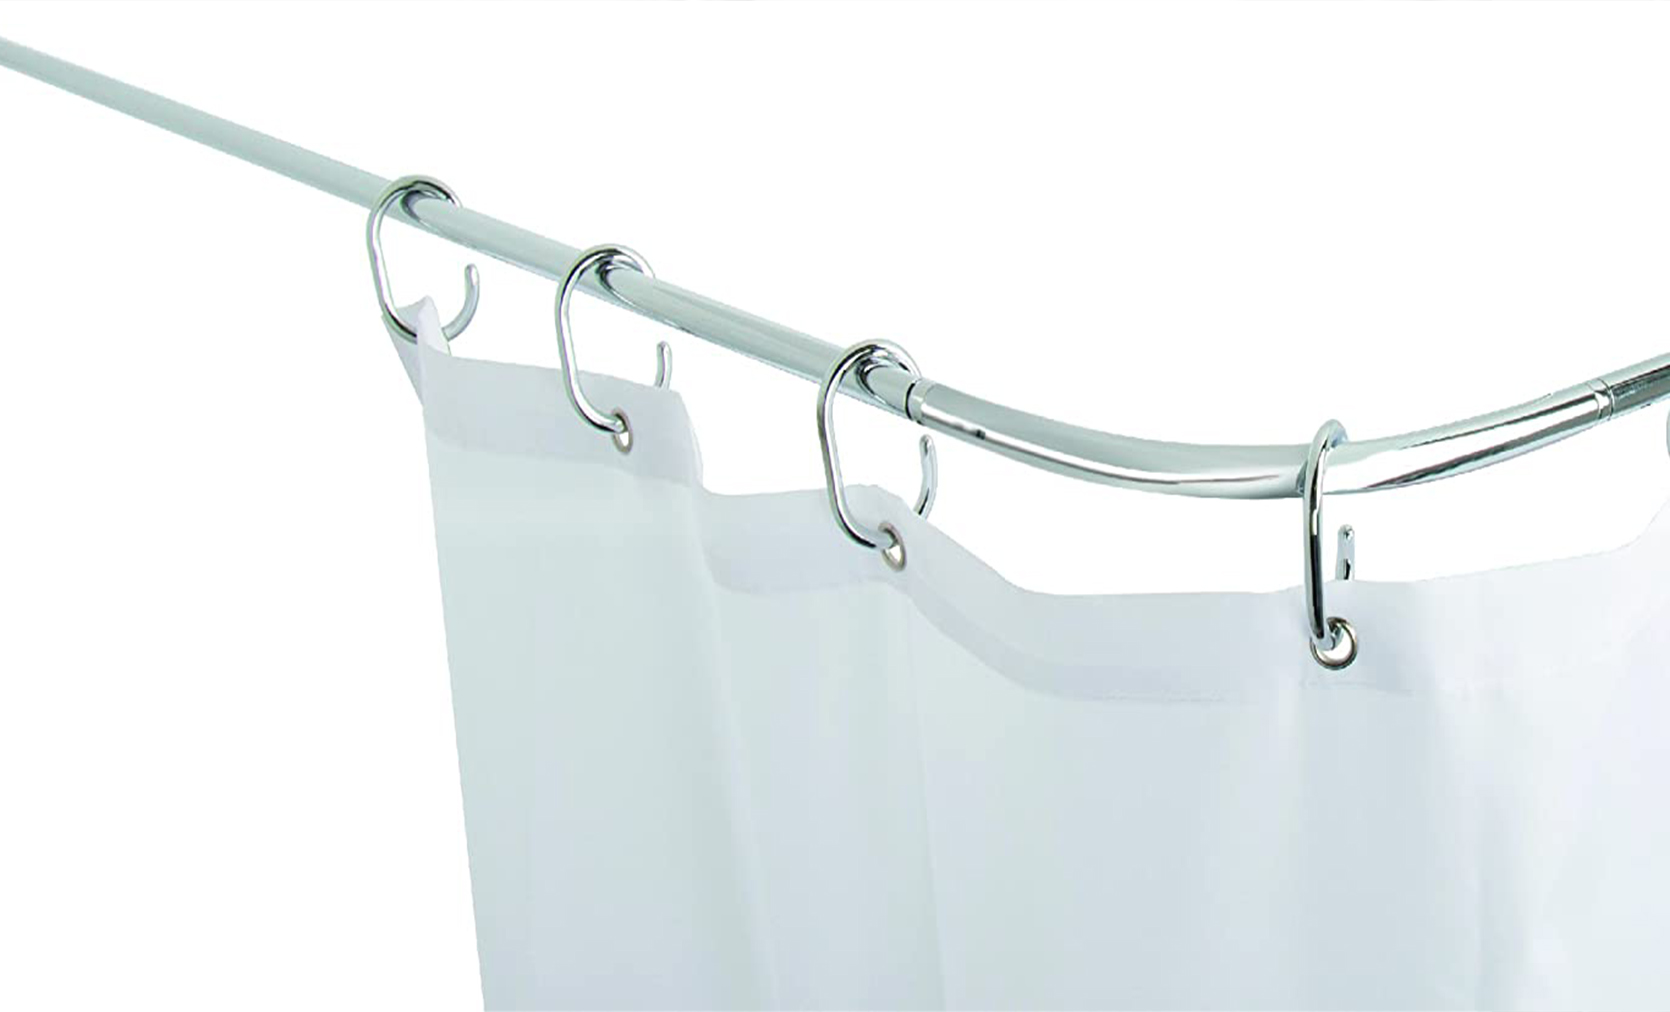 Tubular 'U' / 'L' Shaped Shower Rail - Chrome